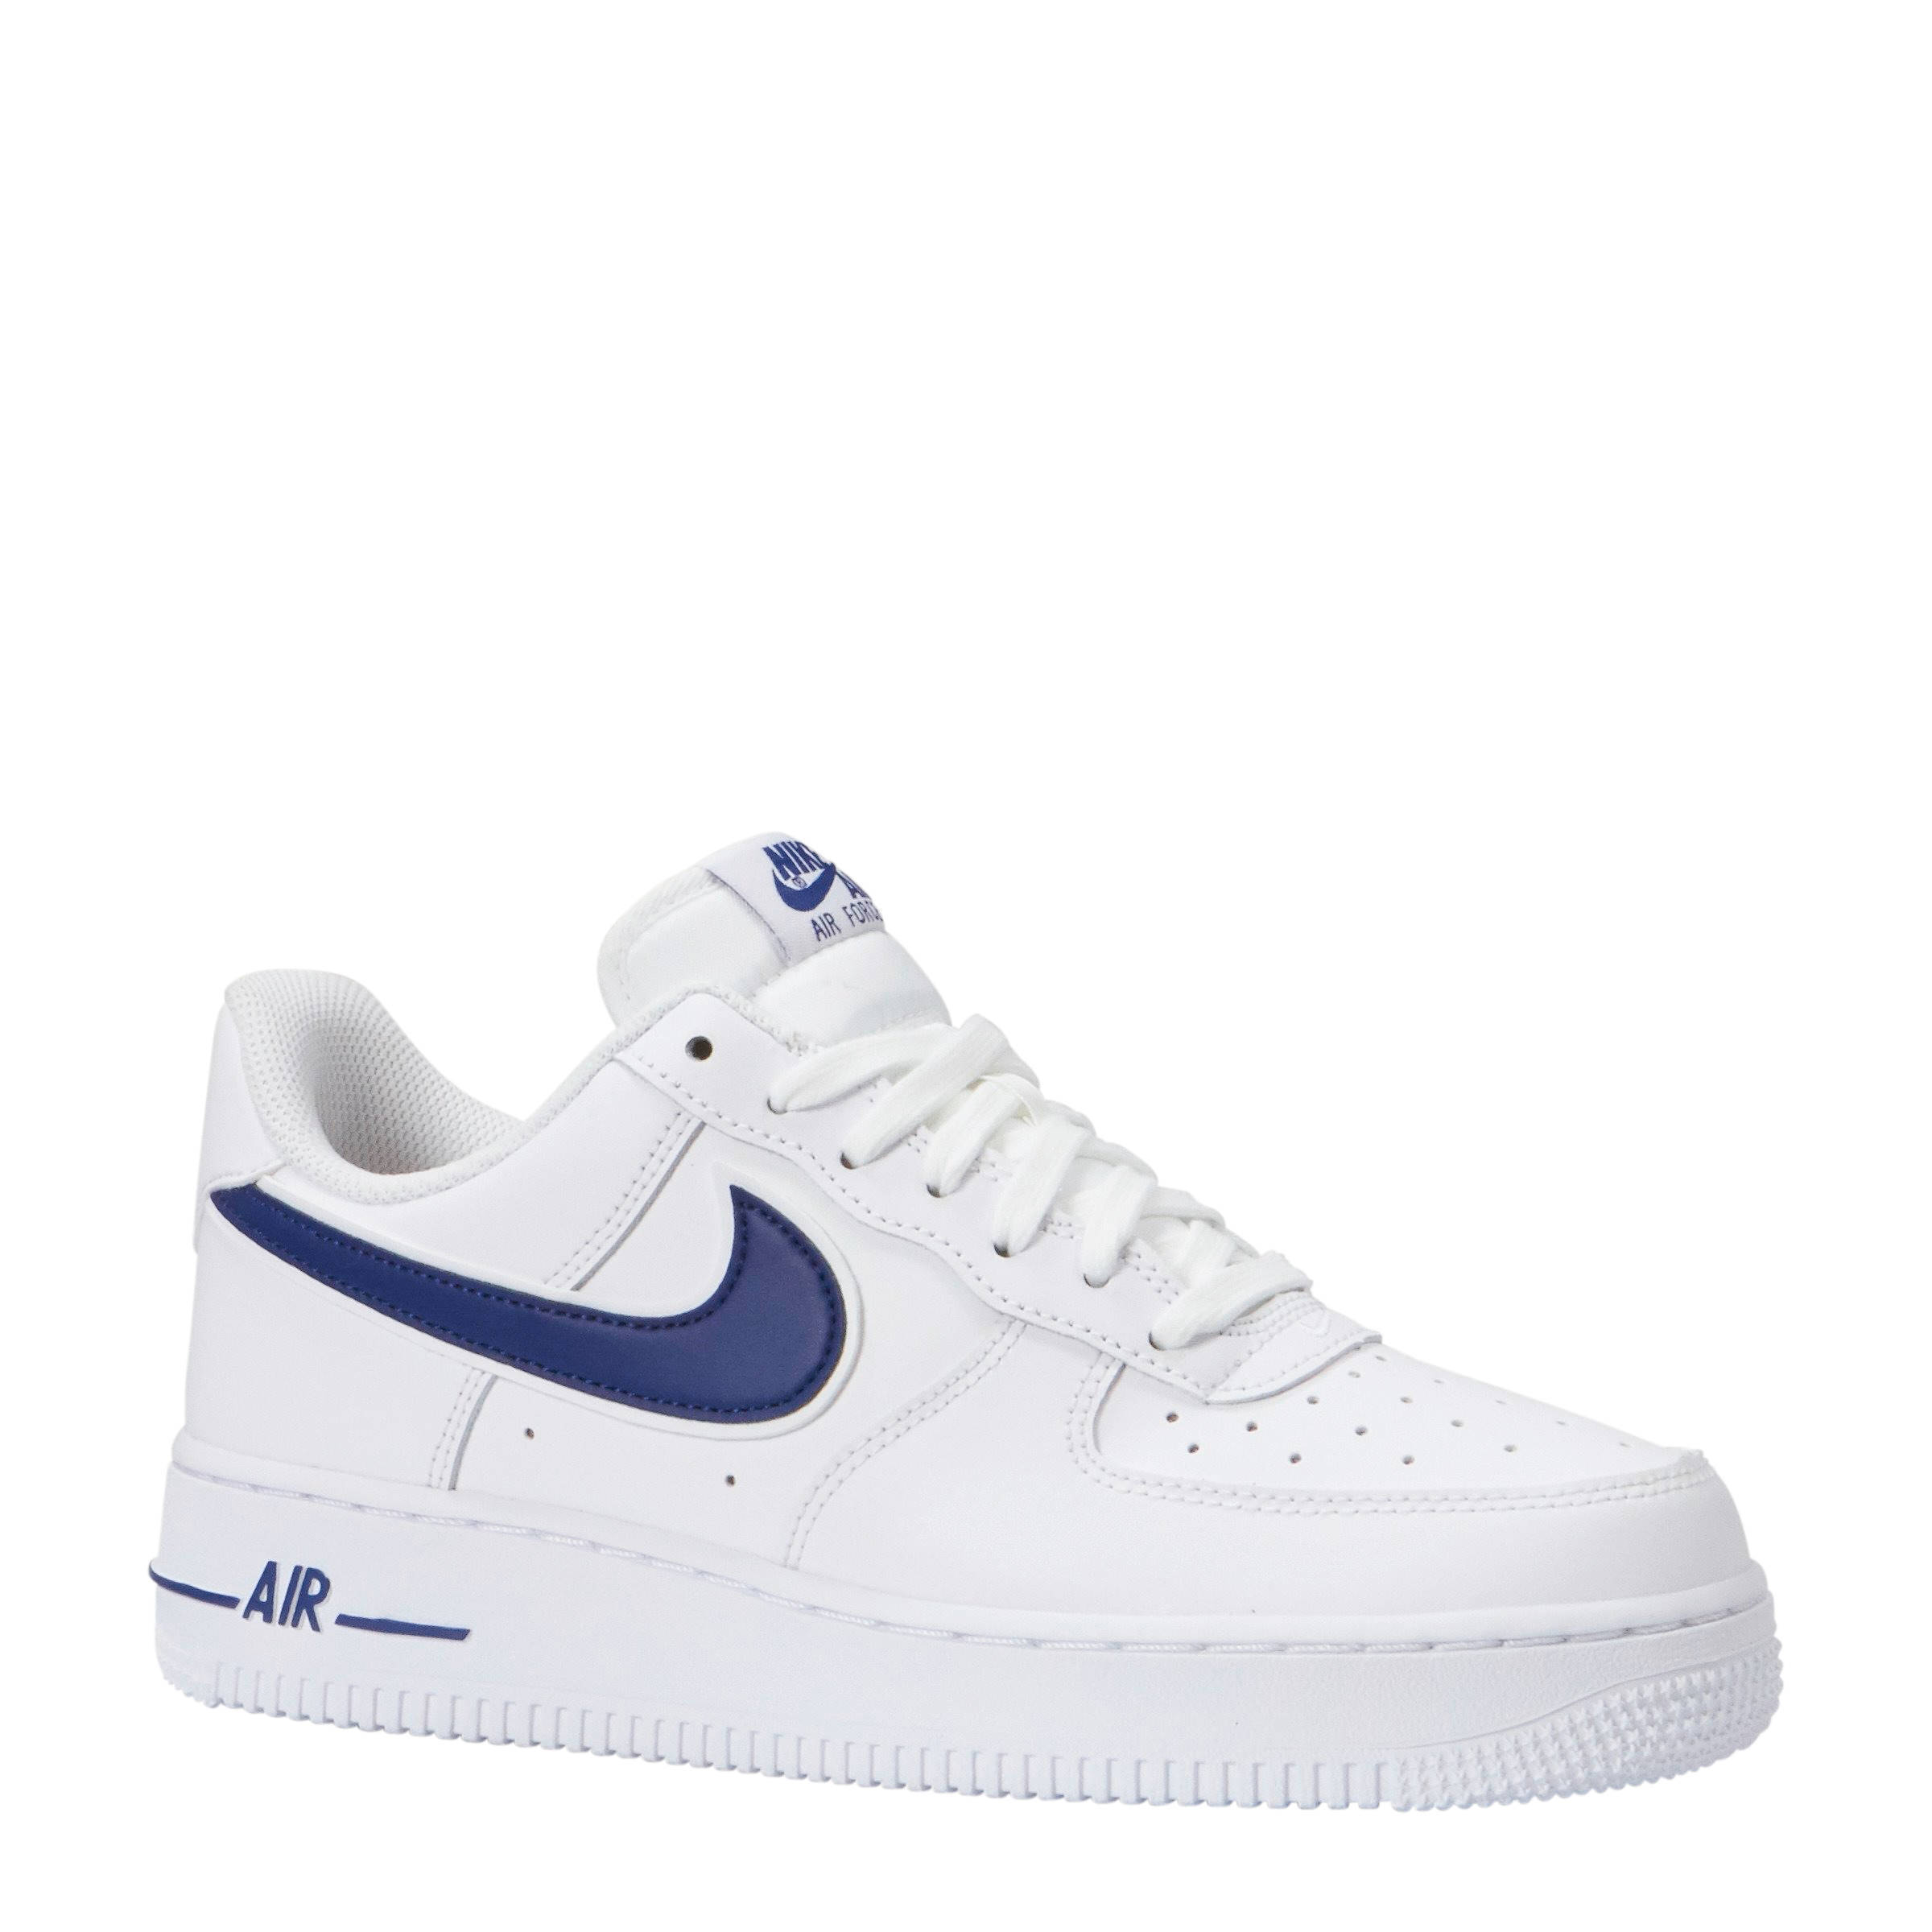 Nike Air Force 1 '07 3 sneakers leer wit/blauw | wehkamp